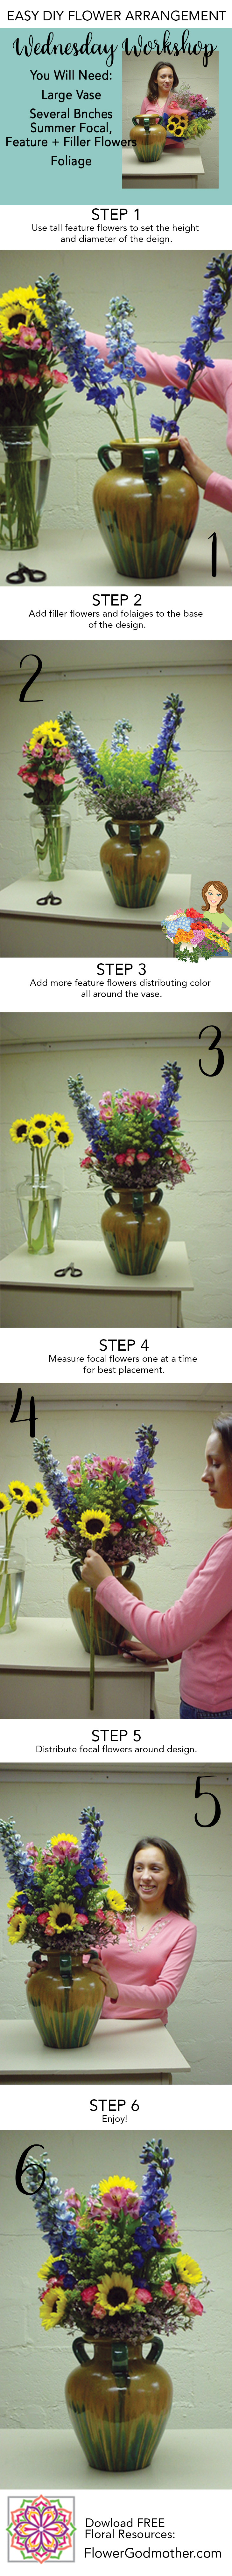 11 Wonderful Floral Vase Filler